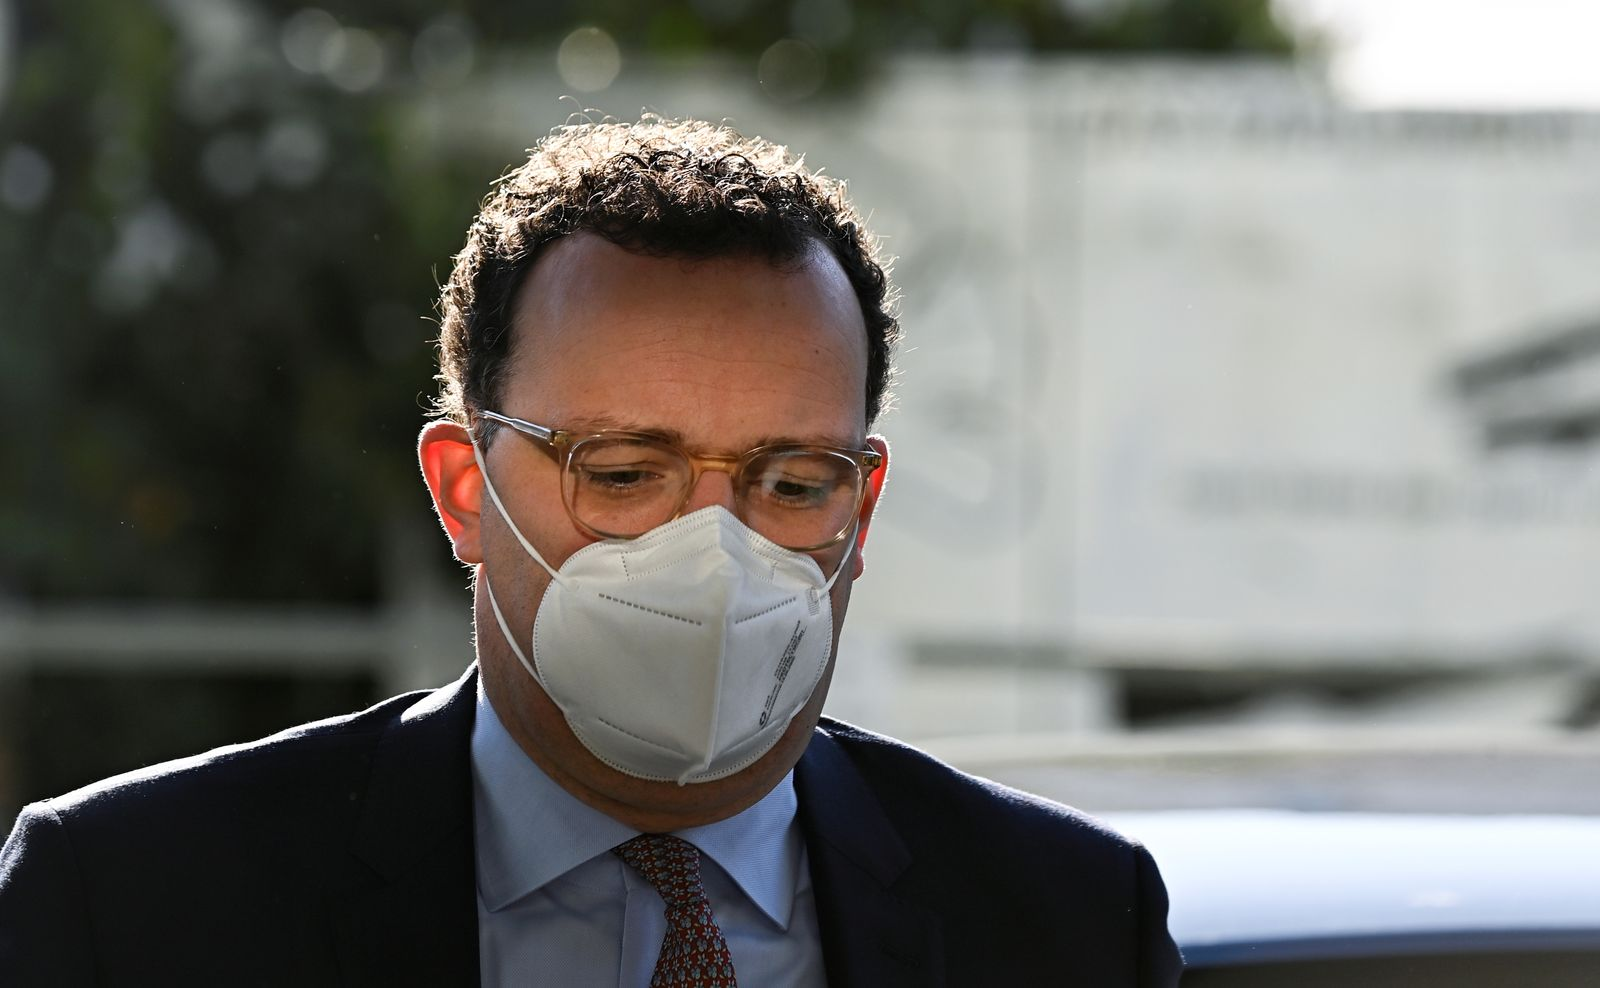 German Health Minister Jens Spahn arrives for a news conference on the coronavirus pandemic situation, in Berlin